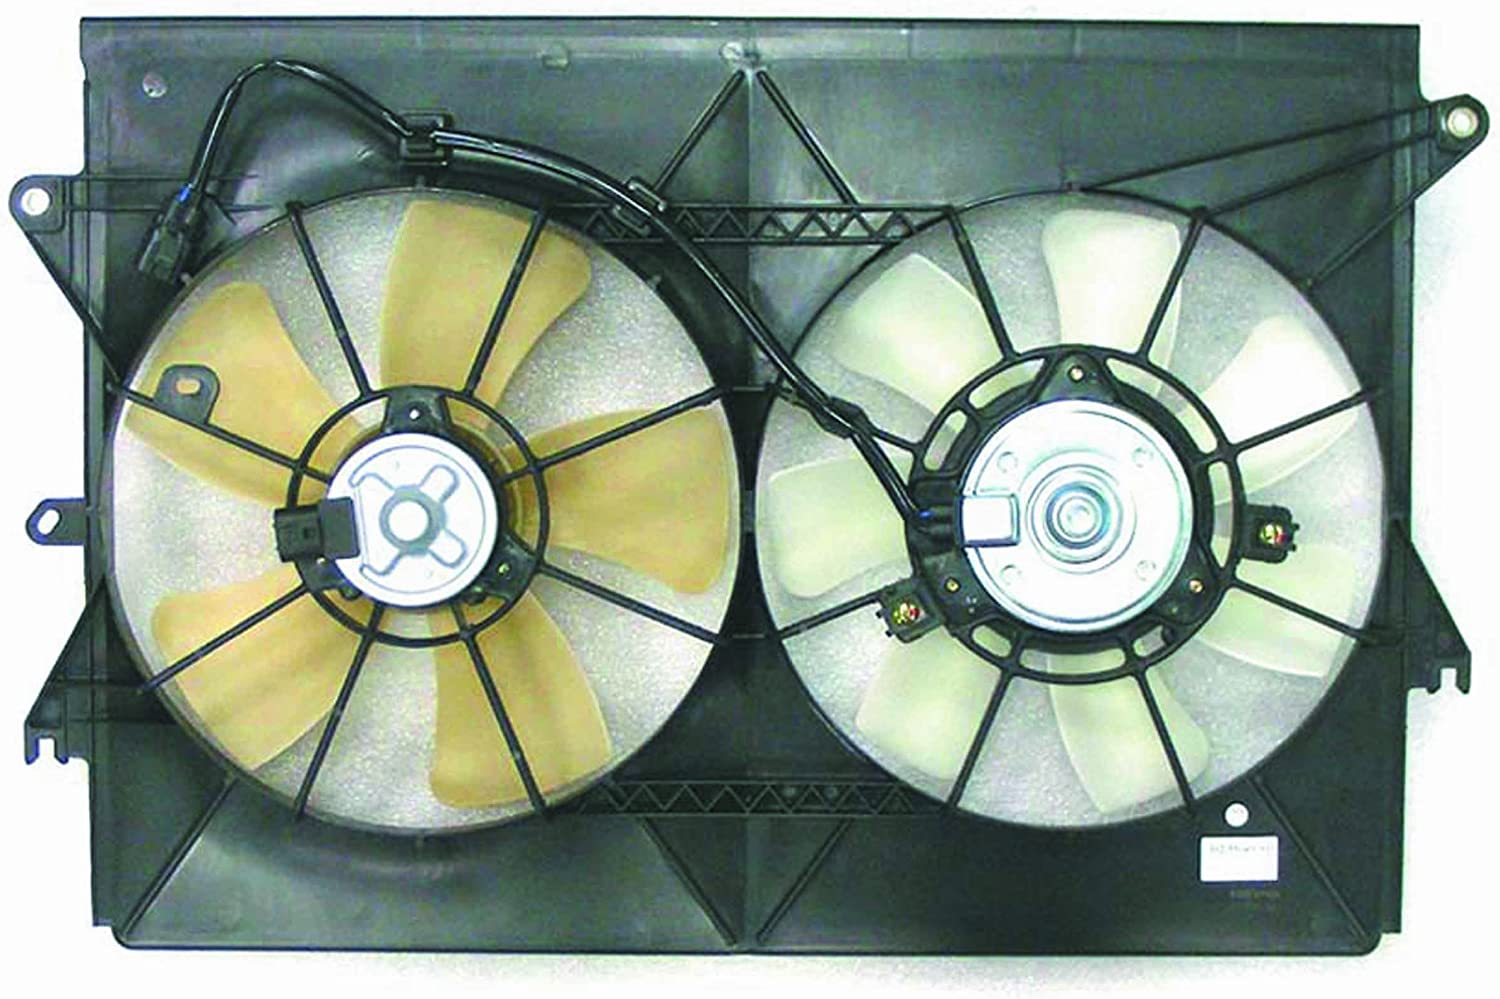 DEPO 312-55040-000 Replacement Engine Cooling Fan Assembly (This product is an aftermarket product. It is not created or sold by the OE car company)